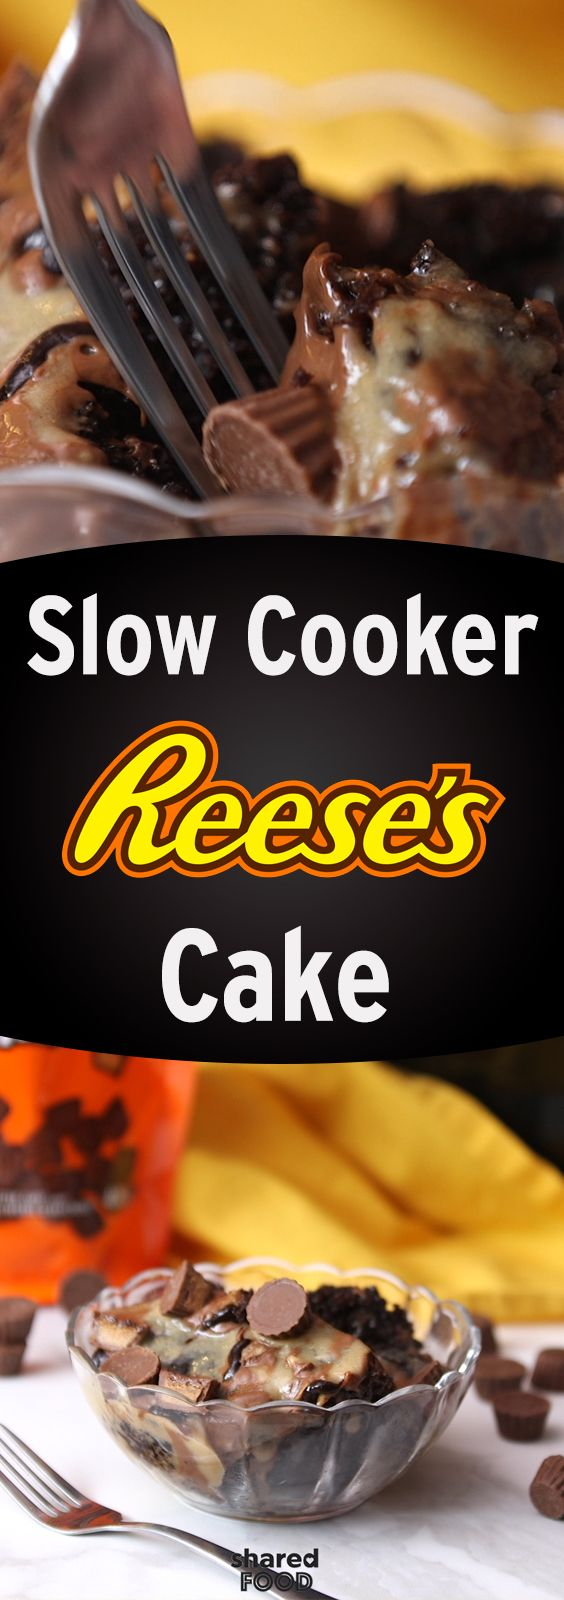 Have you ever made a cake in the slow cooker? Well, your favorite chocolate is now a scrumptious Slow Cooker Reese's Cake! This peanut butter treat is so easy to bake up - just set it, and forget it! This confection is perfect for those times that you need to feed a crowd, but just don't have that much time. Give it a try, you won't regret it!